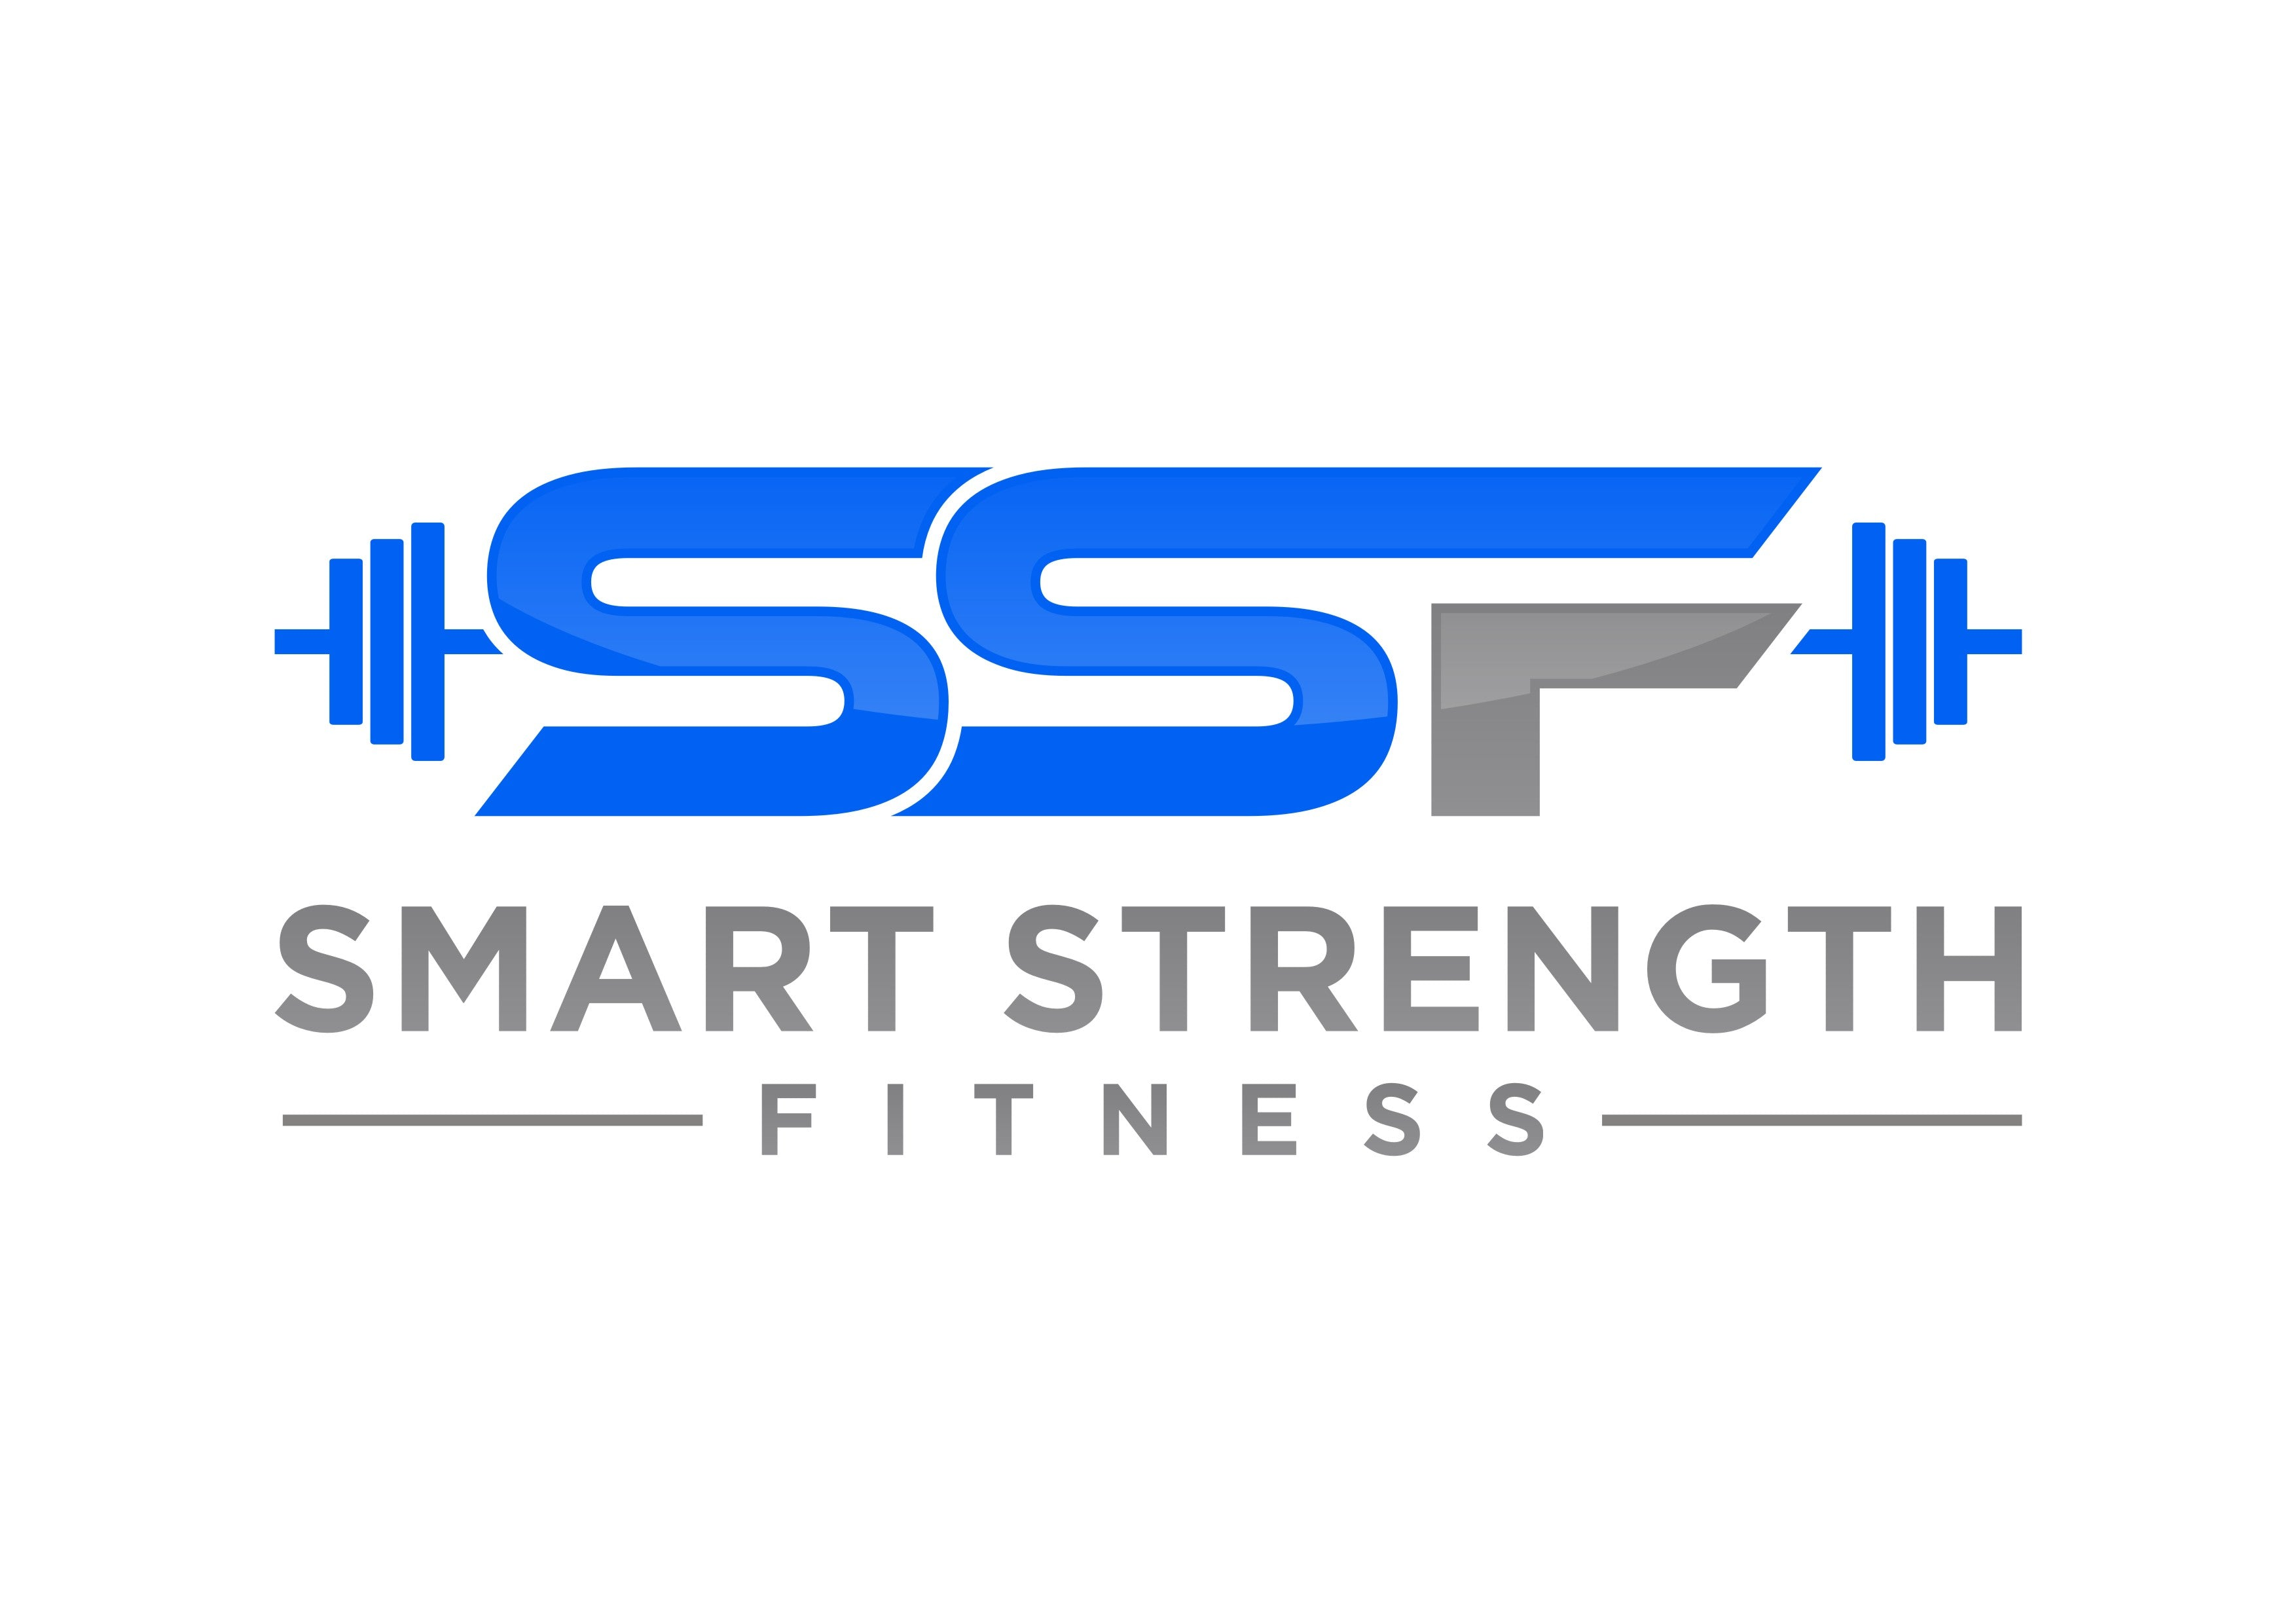 Smart Strength Fitness